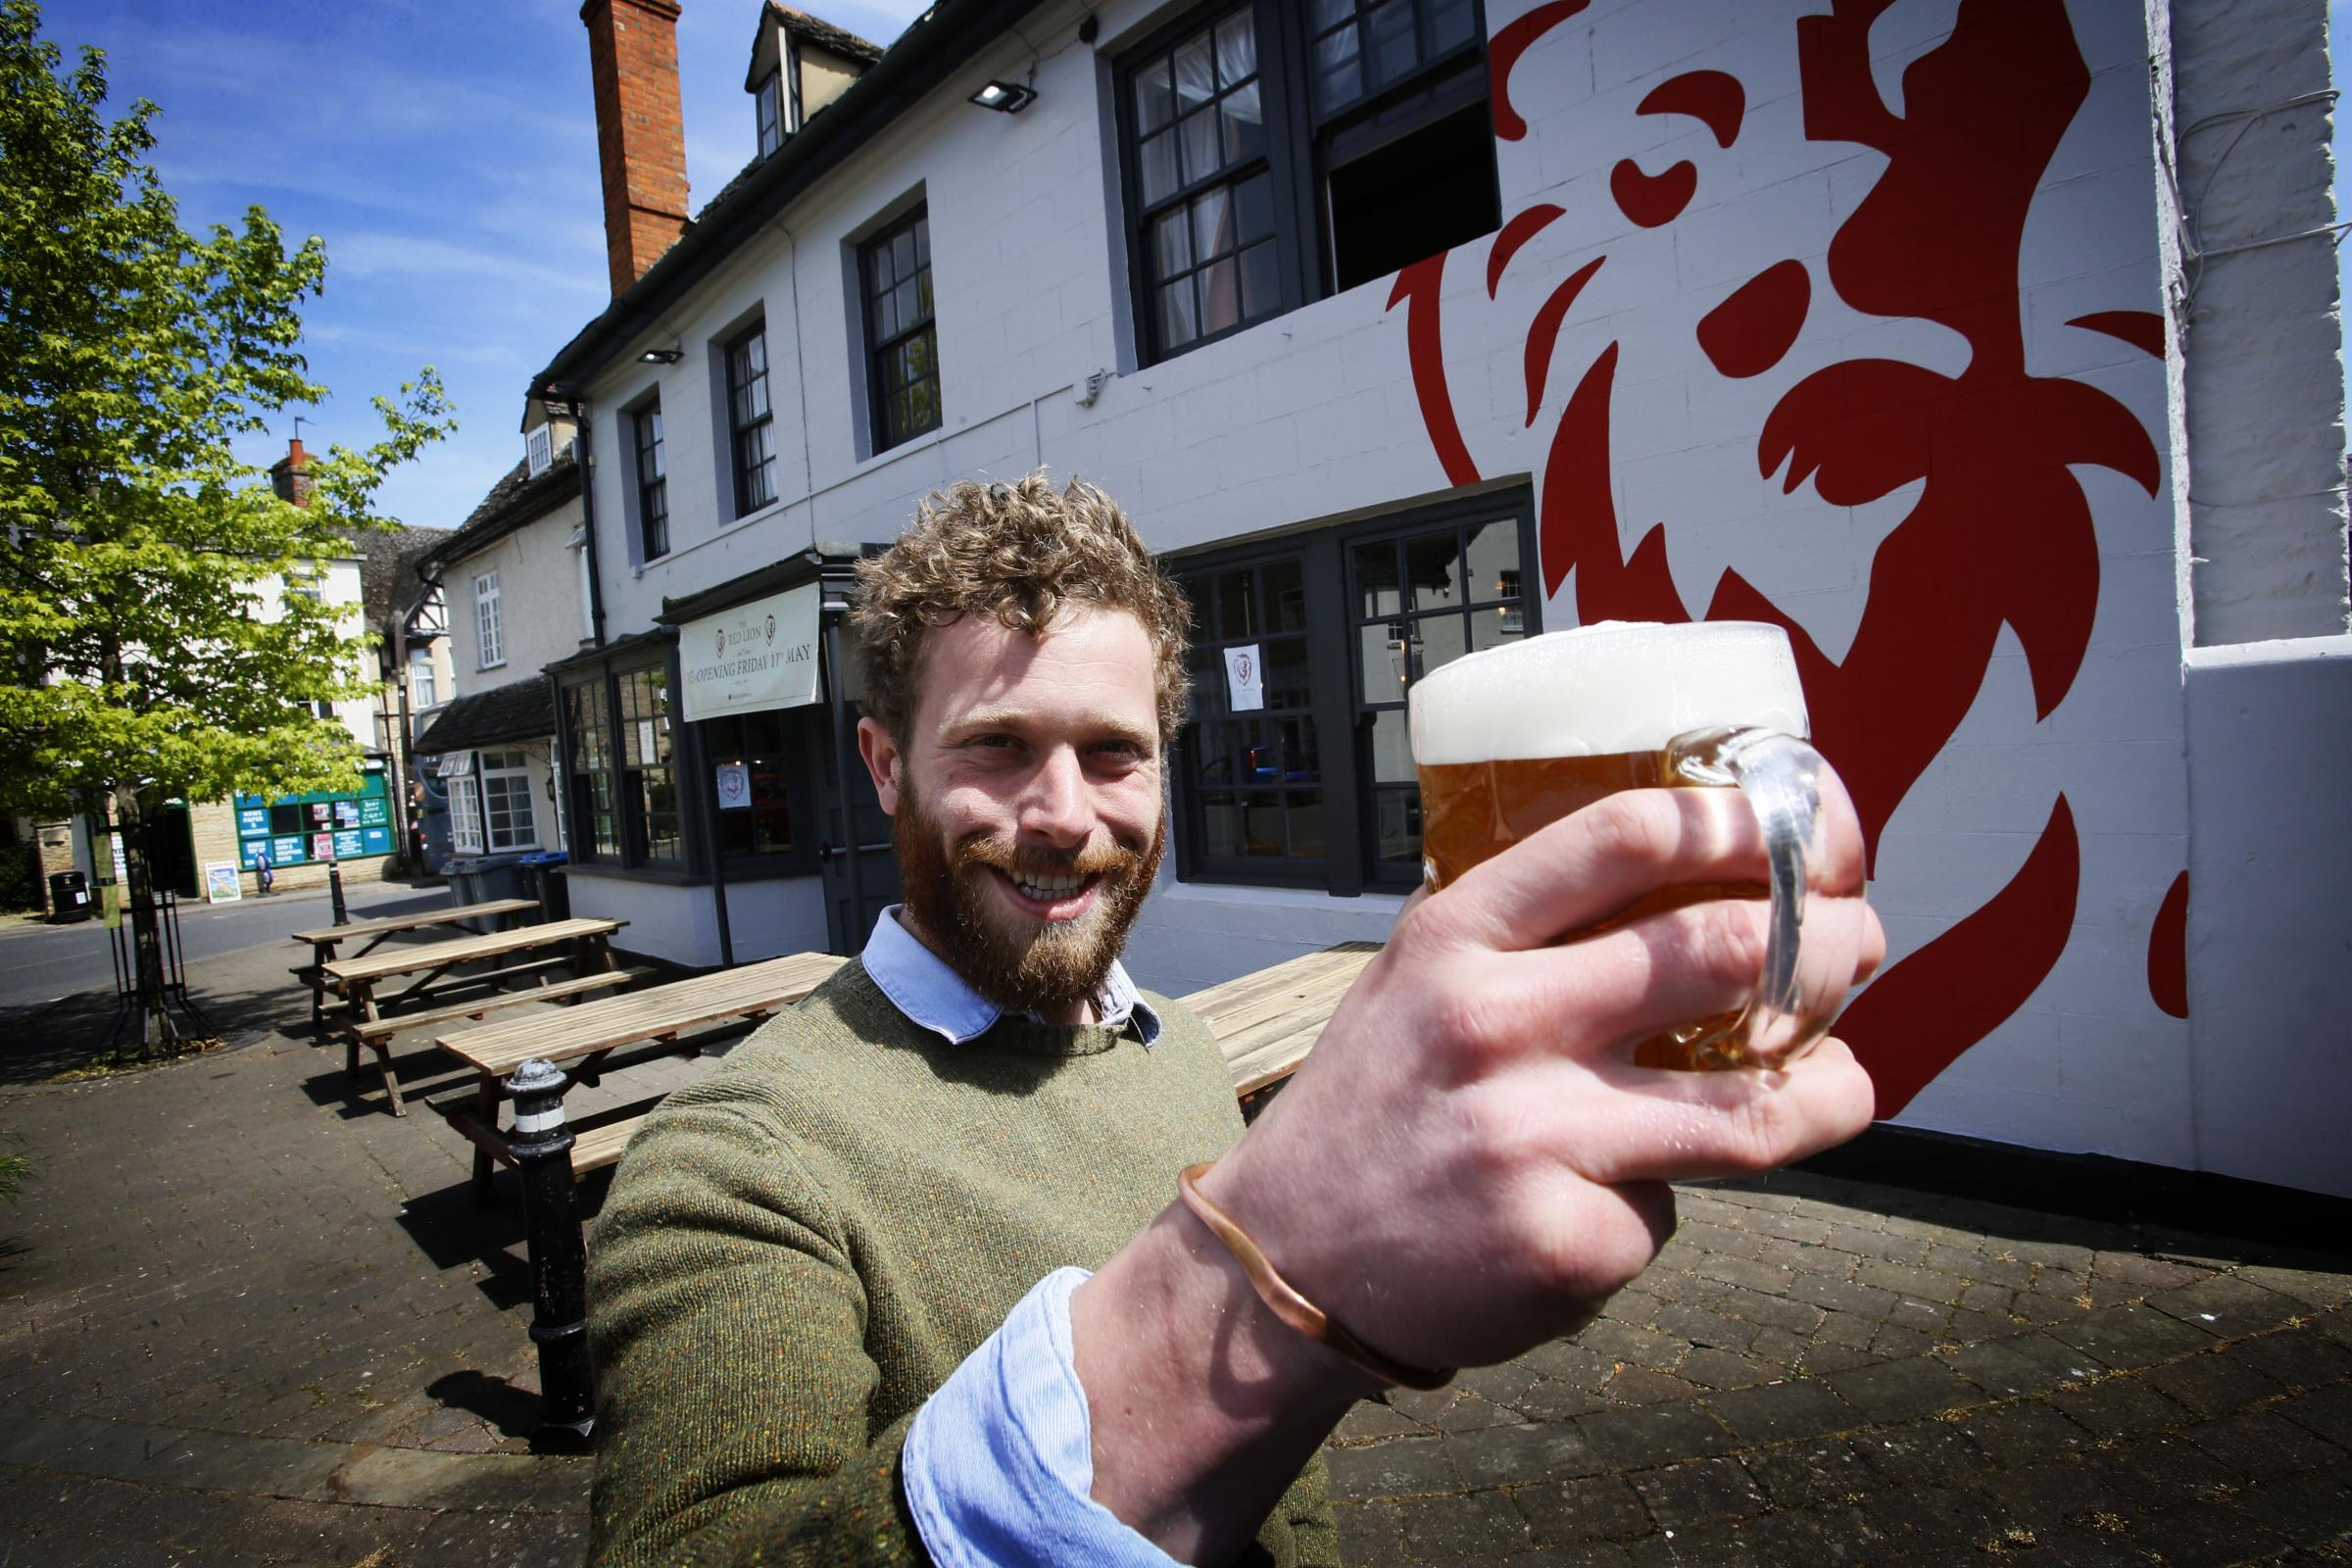 Jolly Postboys' George Harwood-Dallyn, who is 'hugely excited' to open Eynsham's Red Lion. Picture: Ed Nix